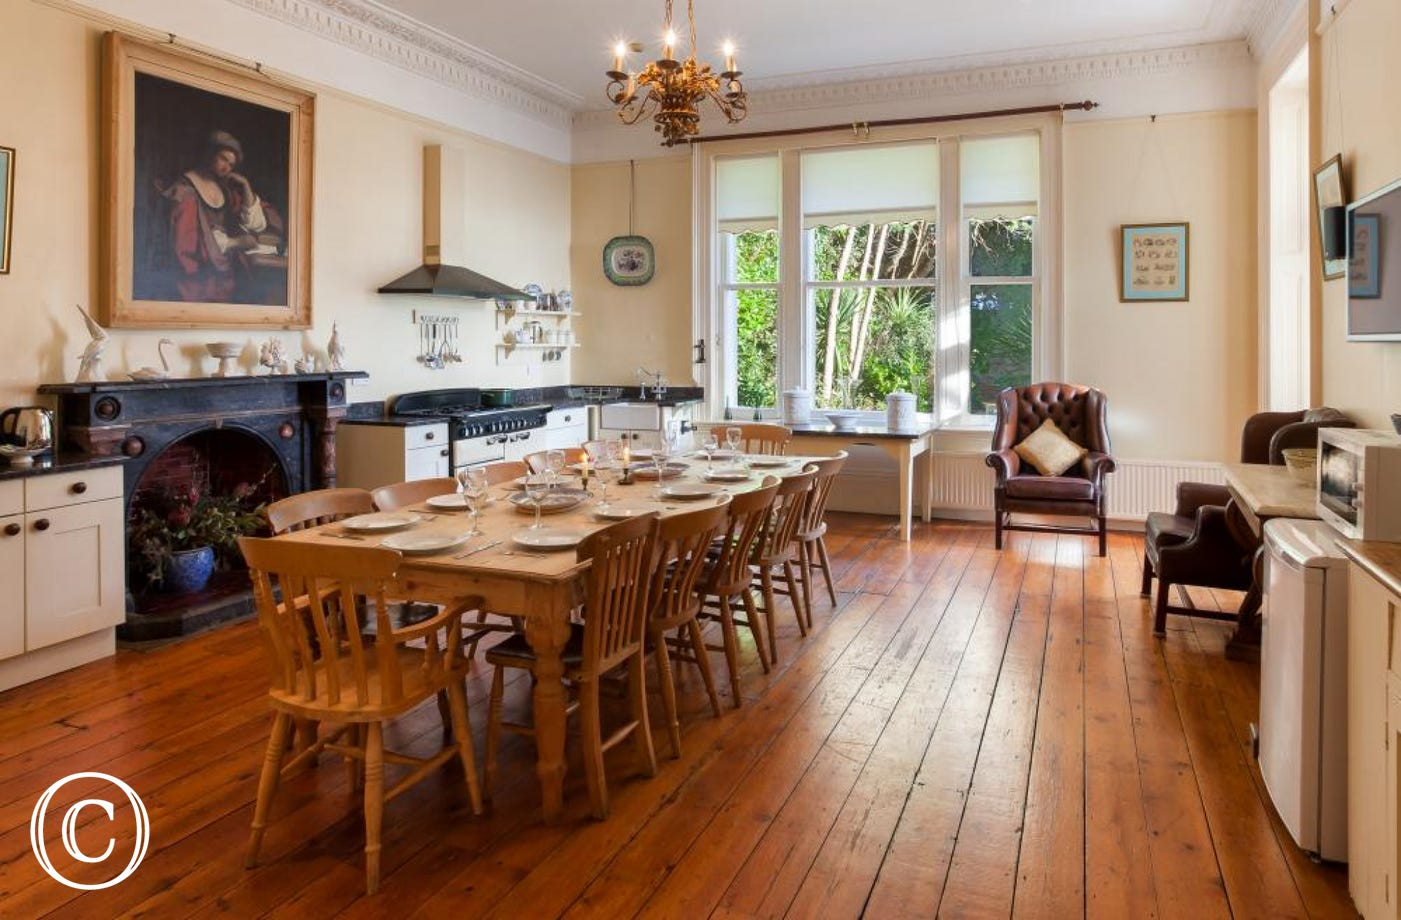 Longcroft House, Torquay - Kitchen with large dining table